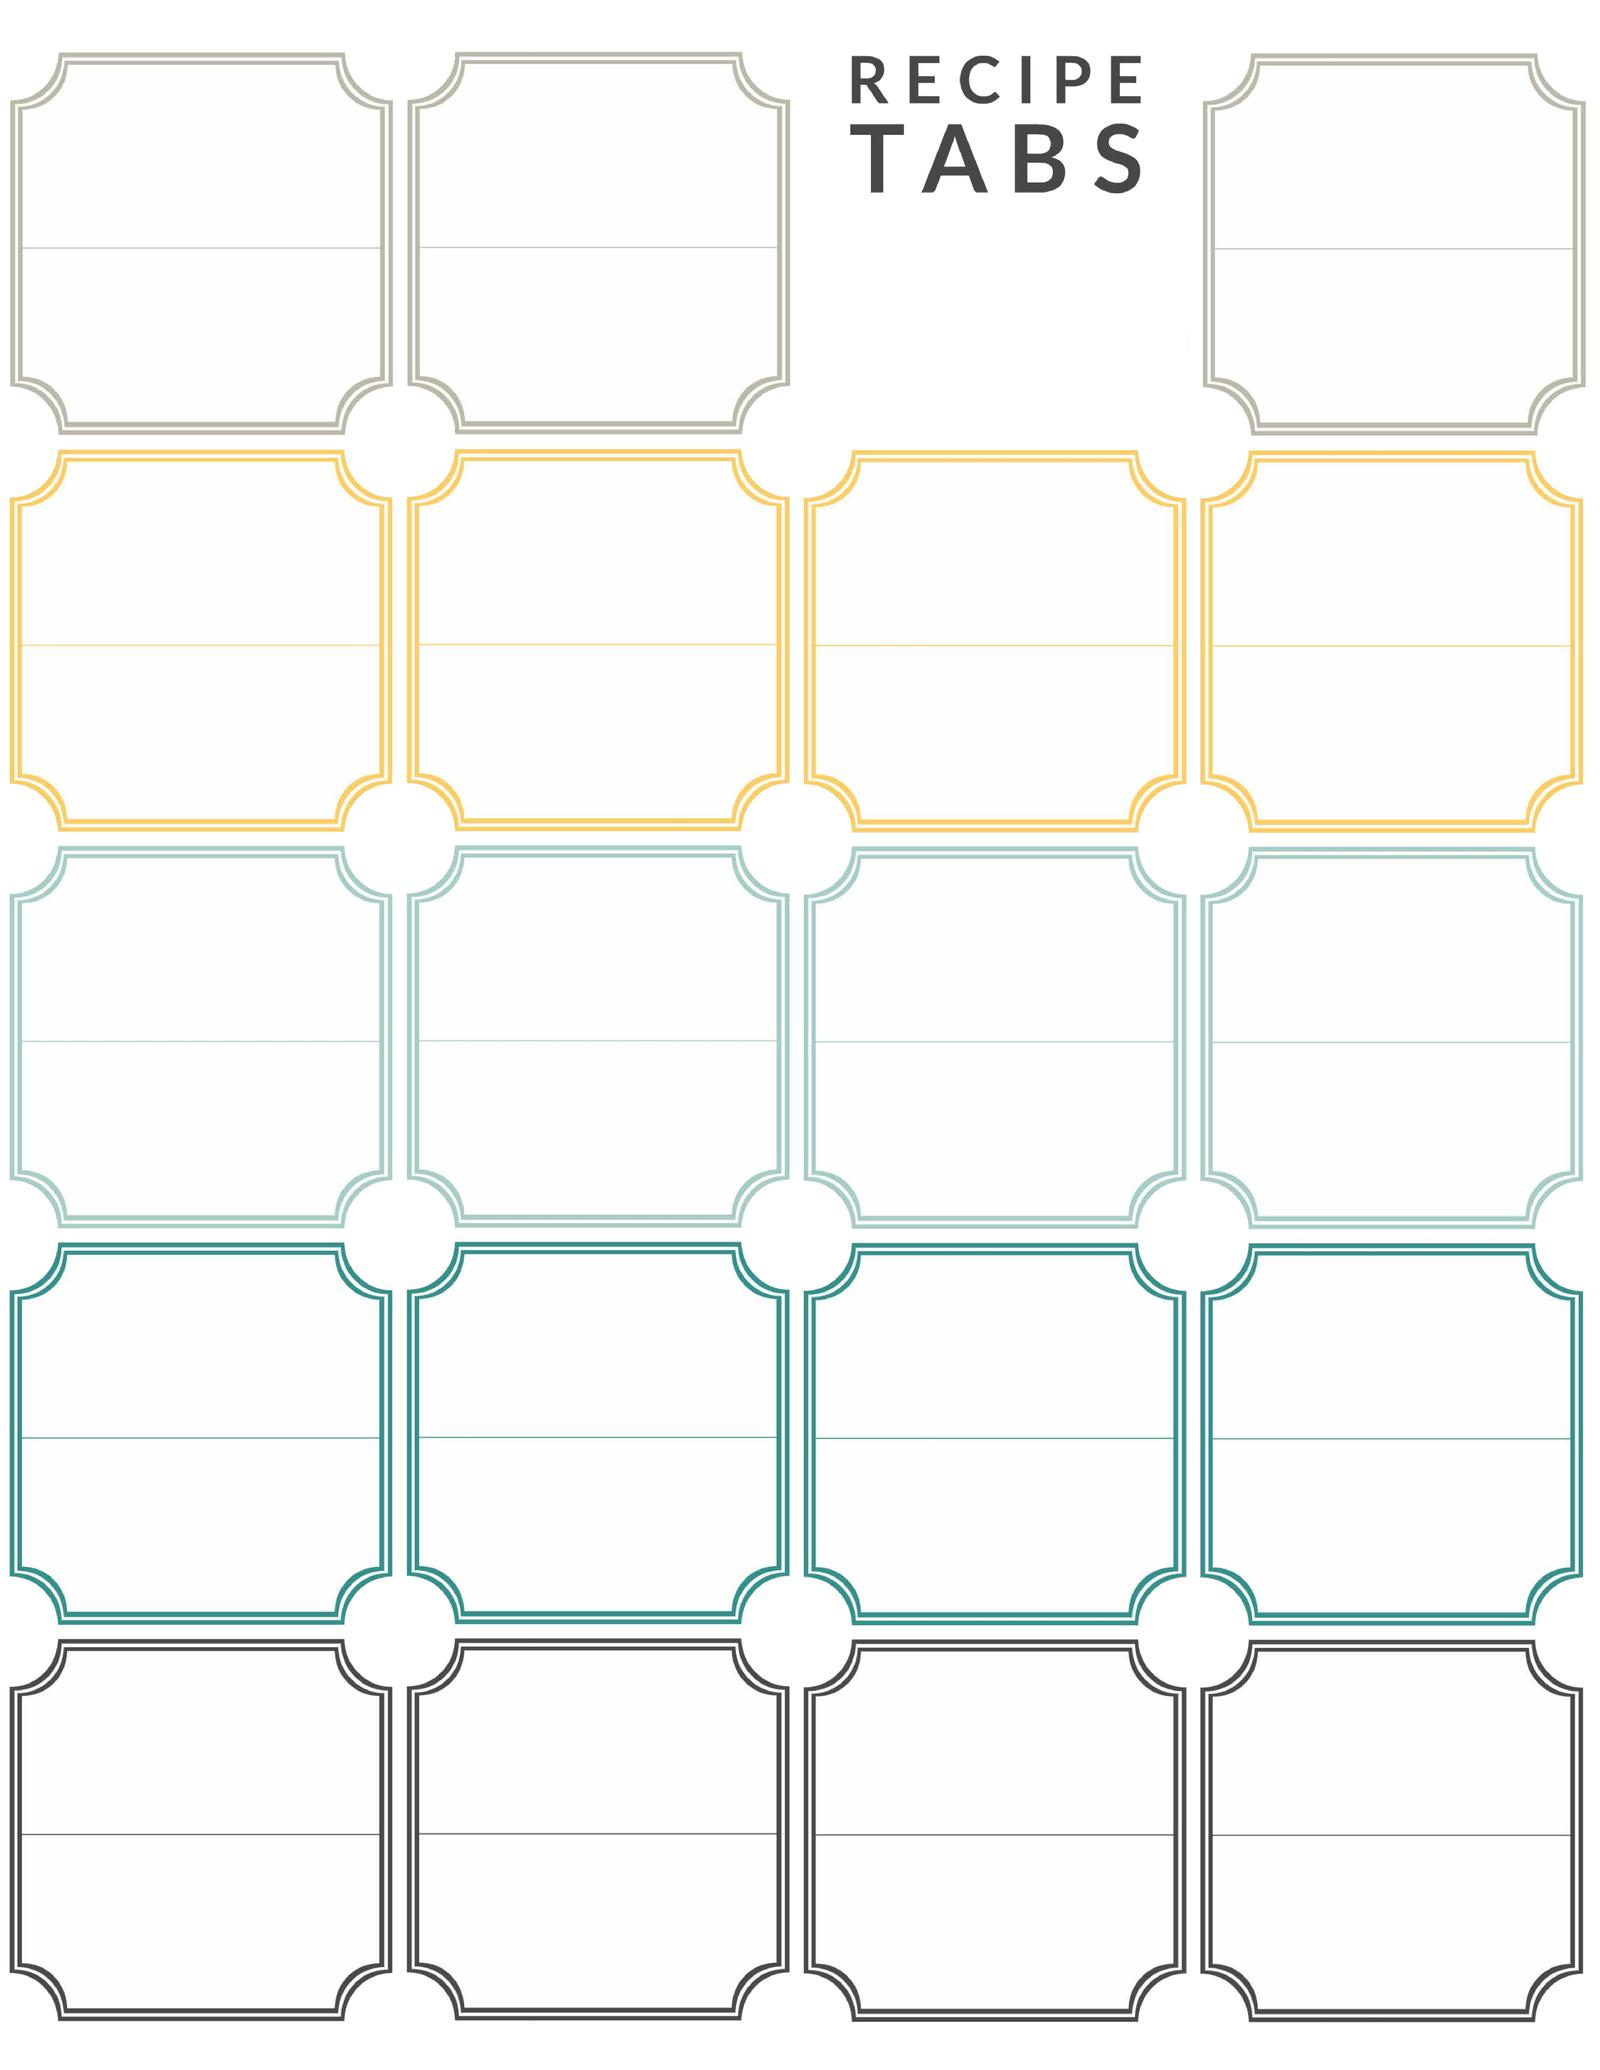 picture regarding Printable Binder Tabs named Do it yourself Recipe Binder (with Absolutely free Printable Downloads)